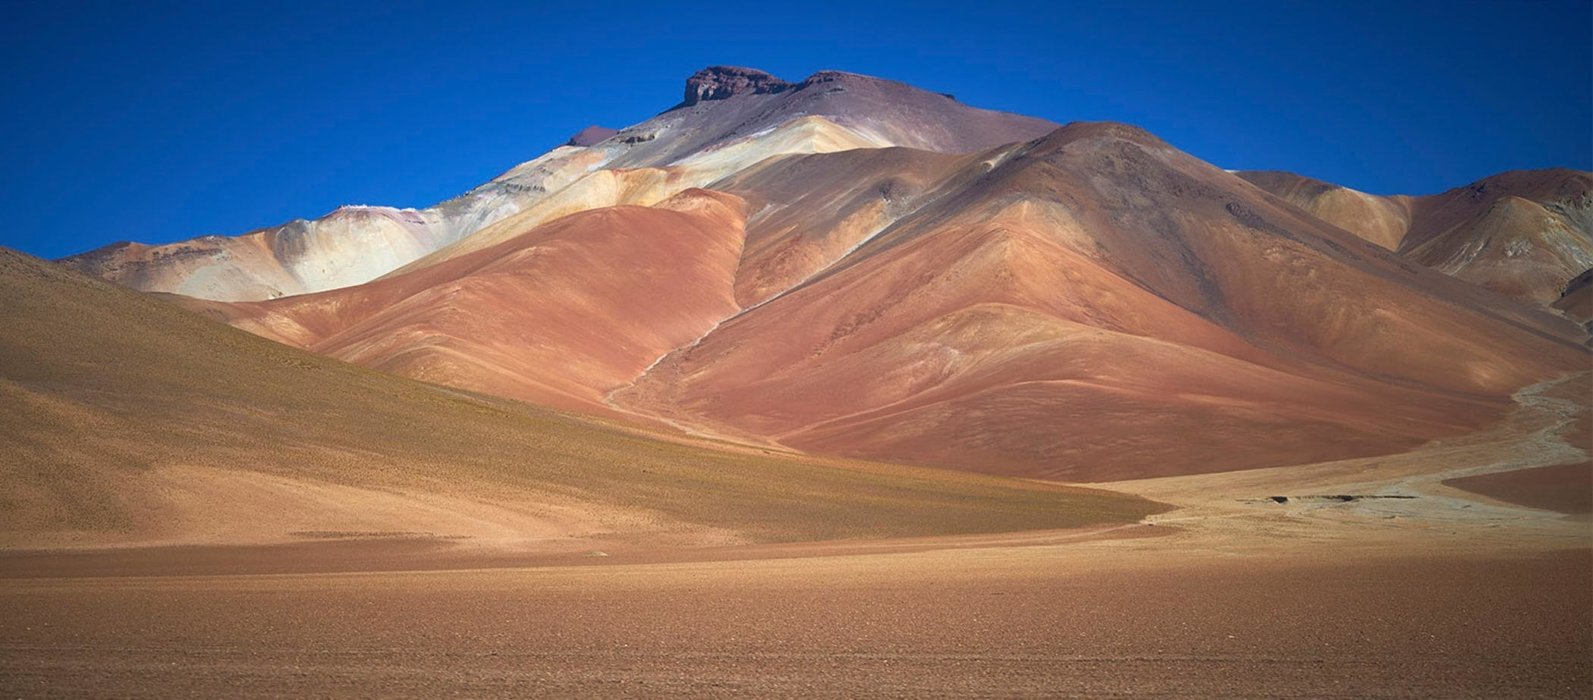 Desert with mountain and colors